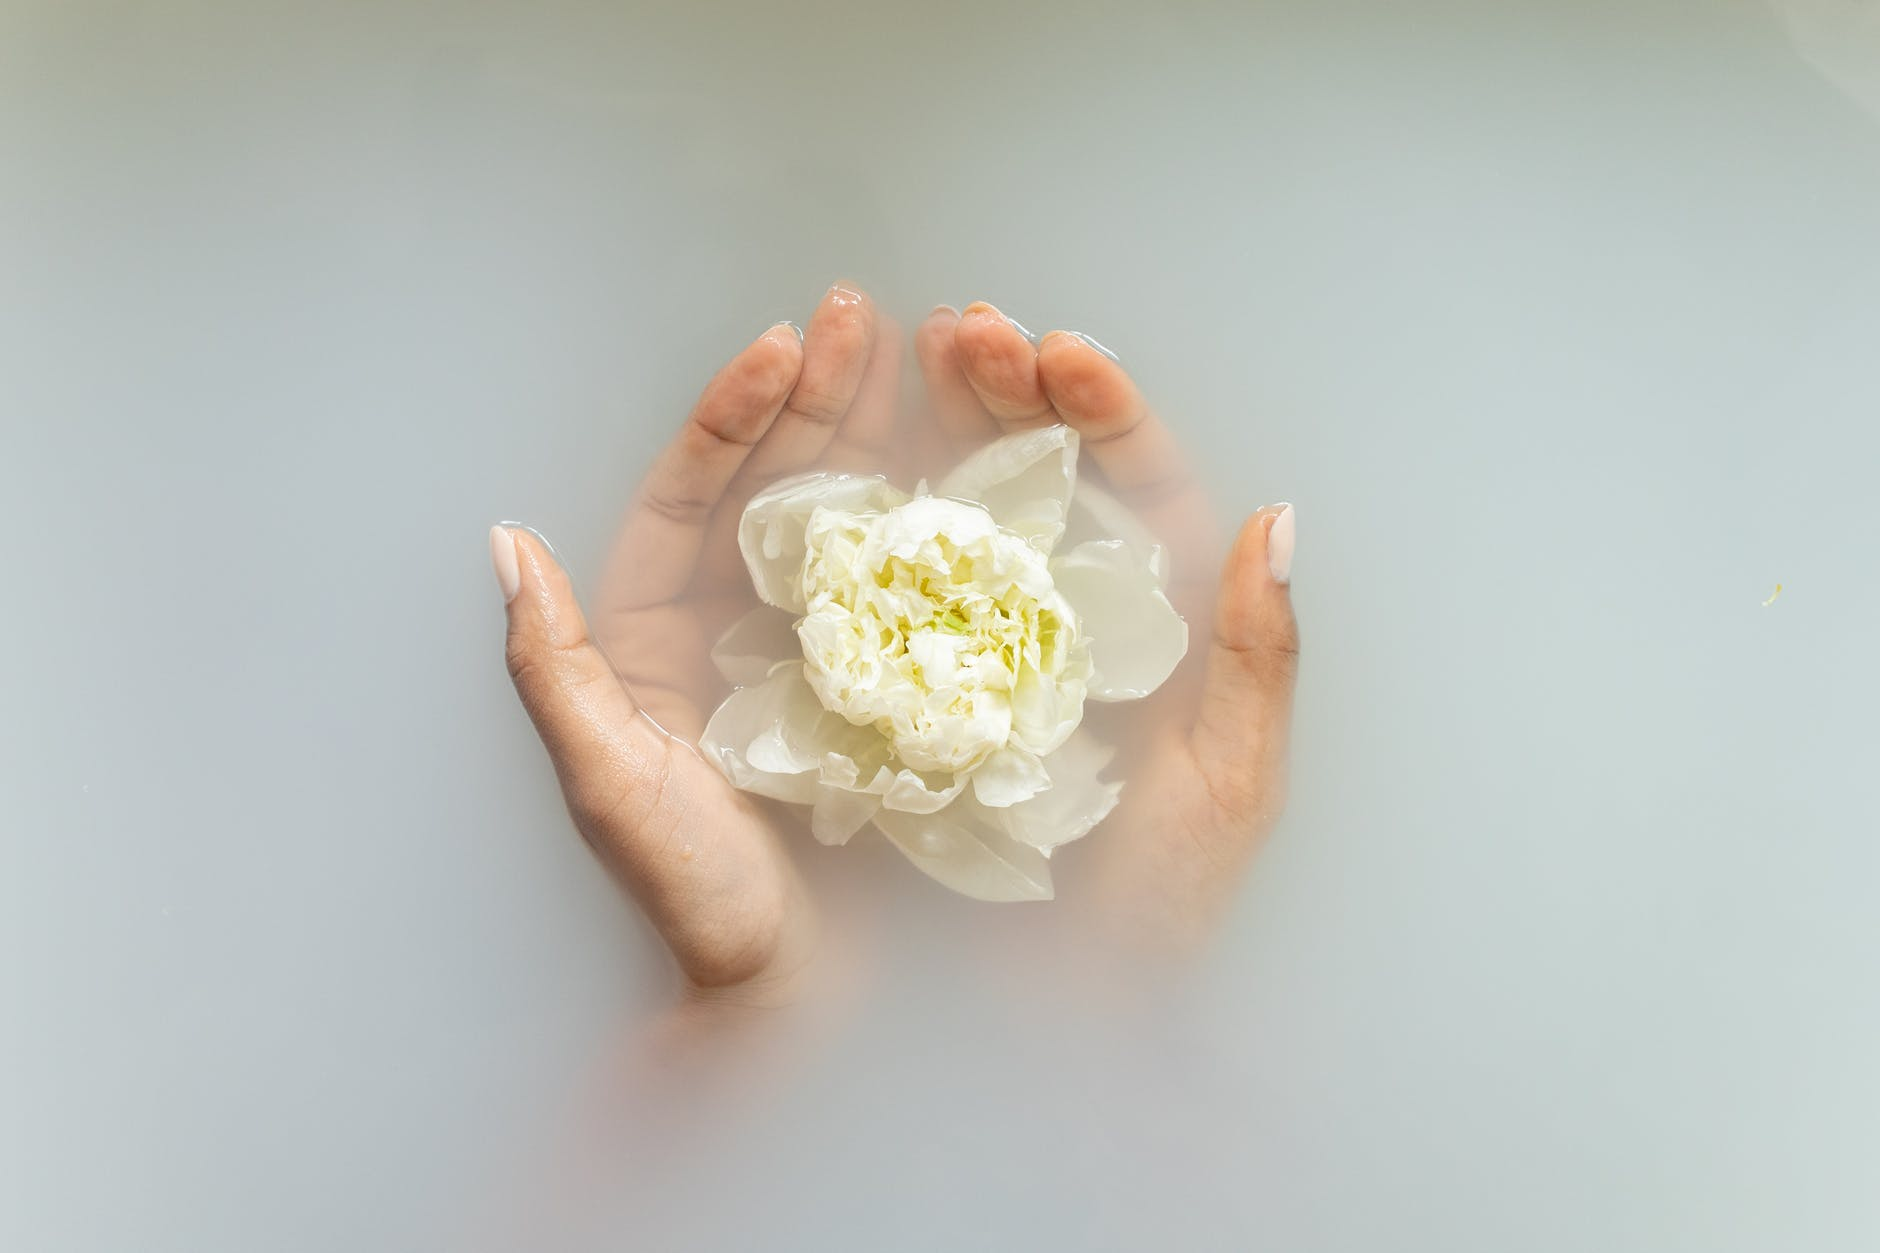 woman holding gentle ivory flower in hands